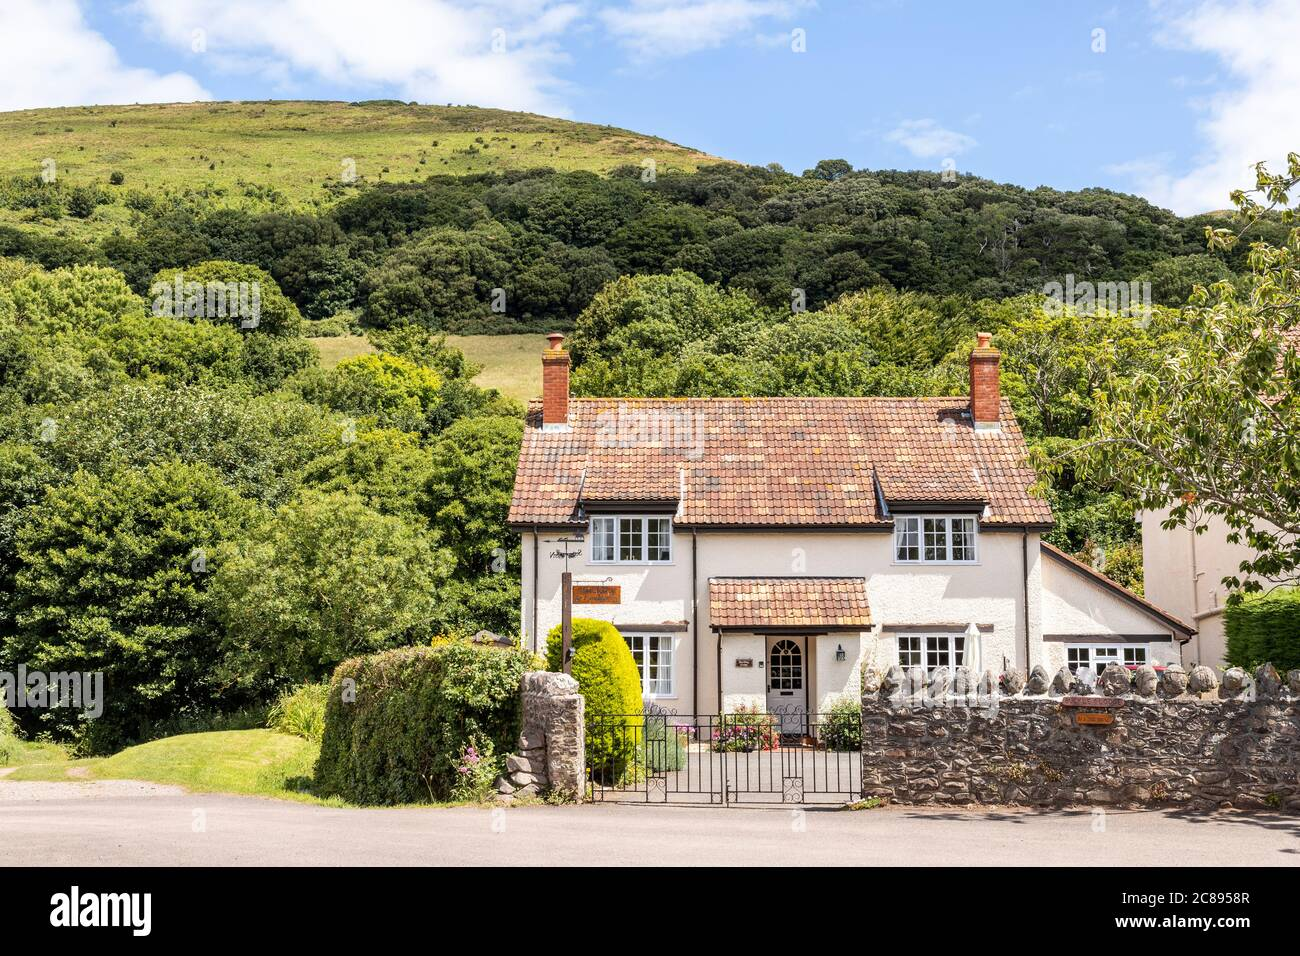 A tiled house on Exmoor National Park in the village of Bossington, Somerset UK Stock Photo